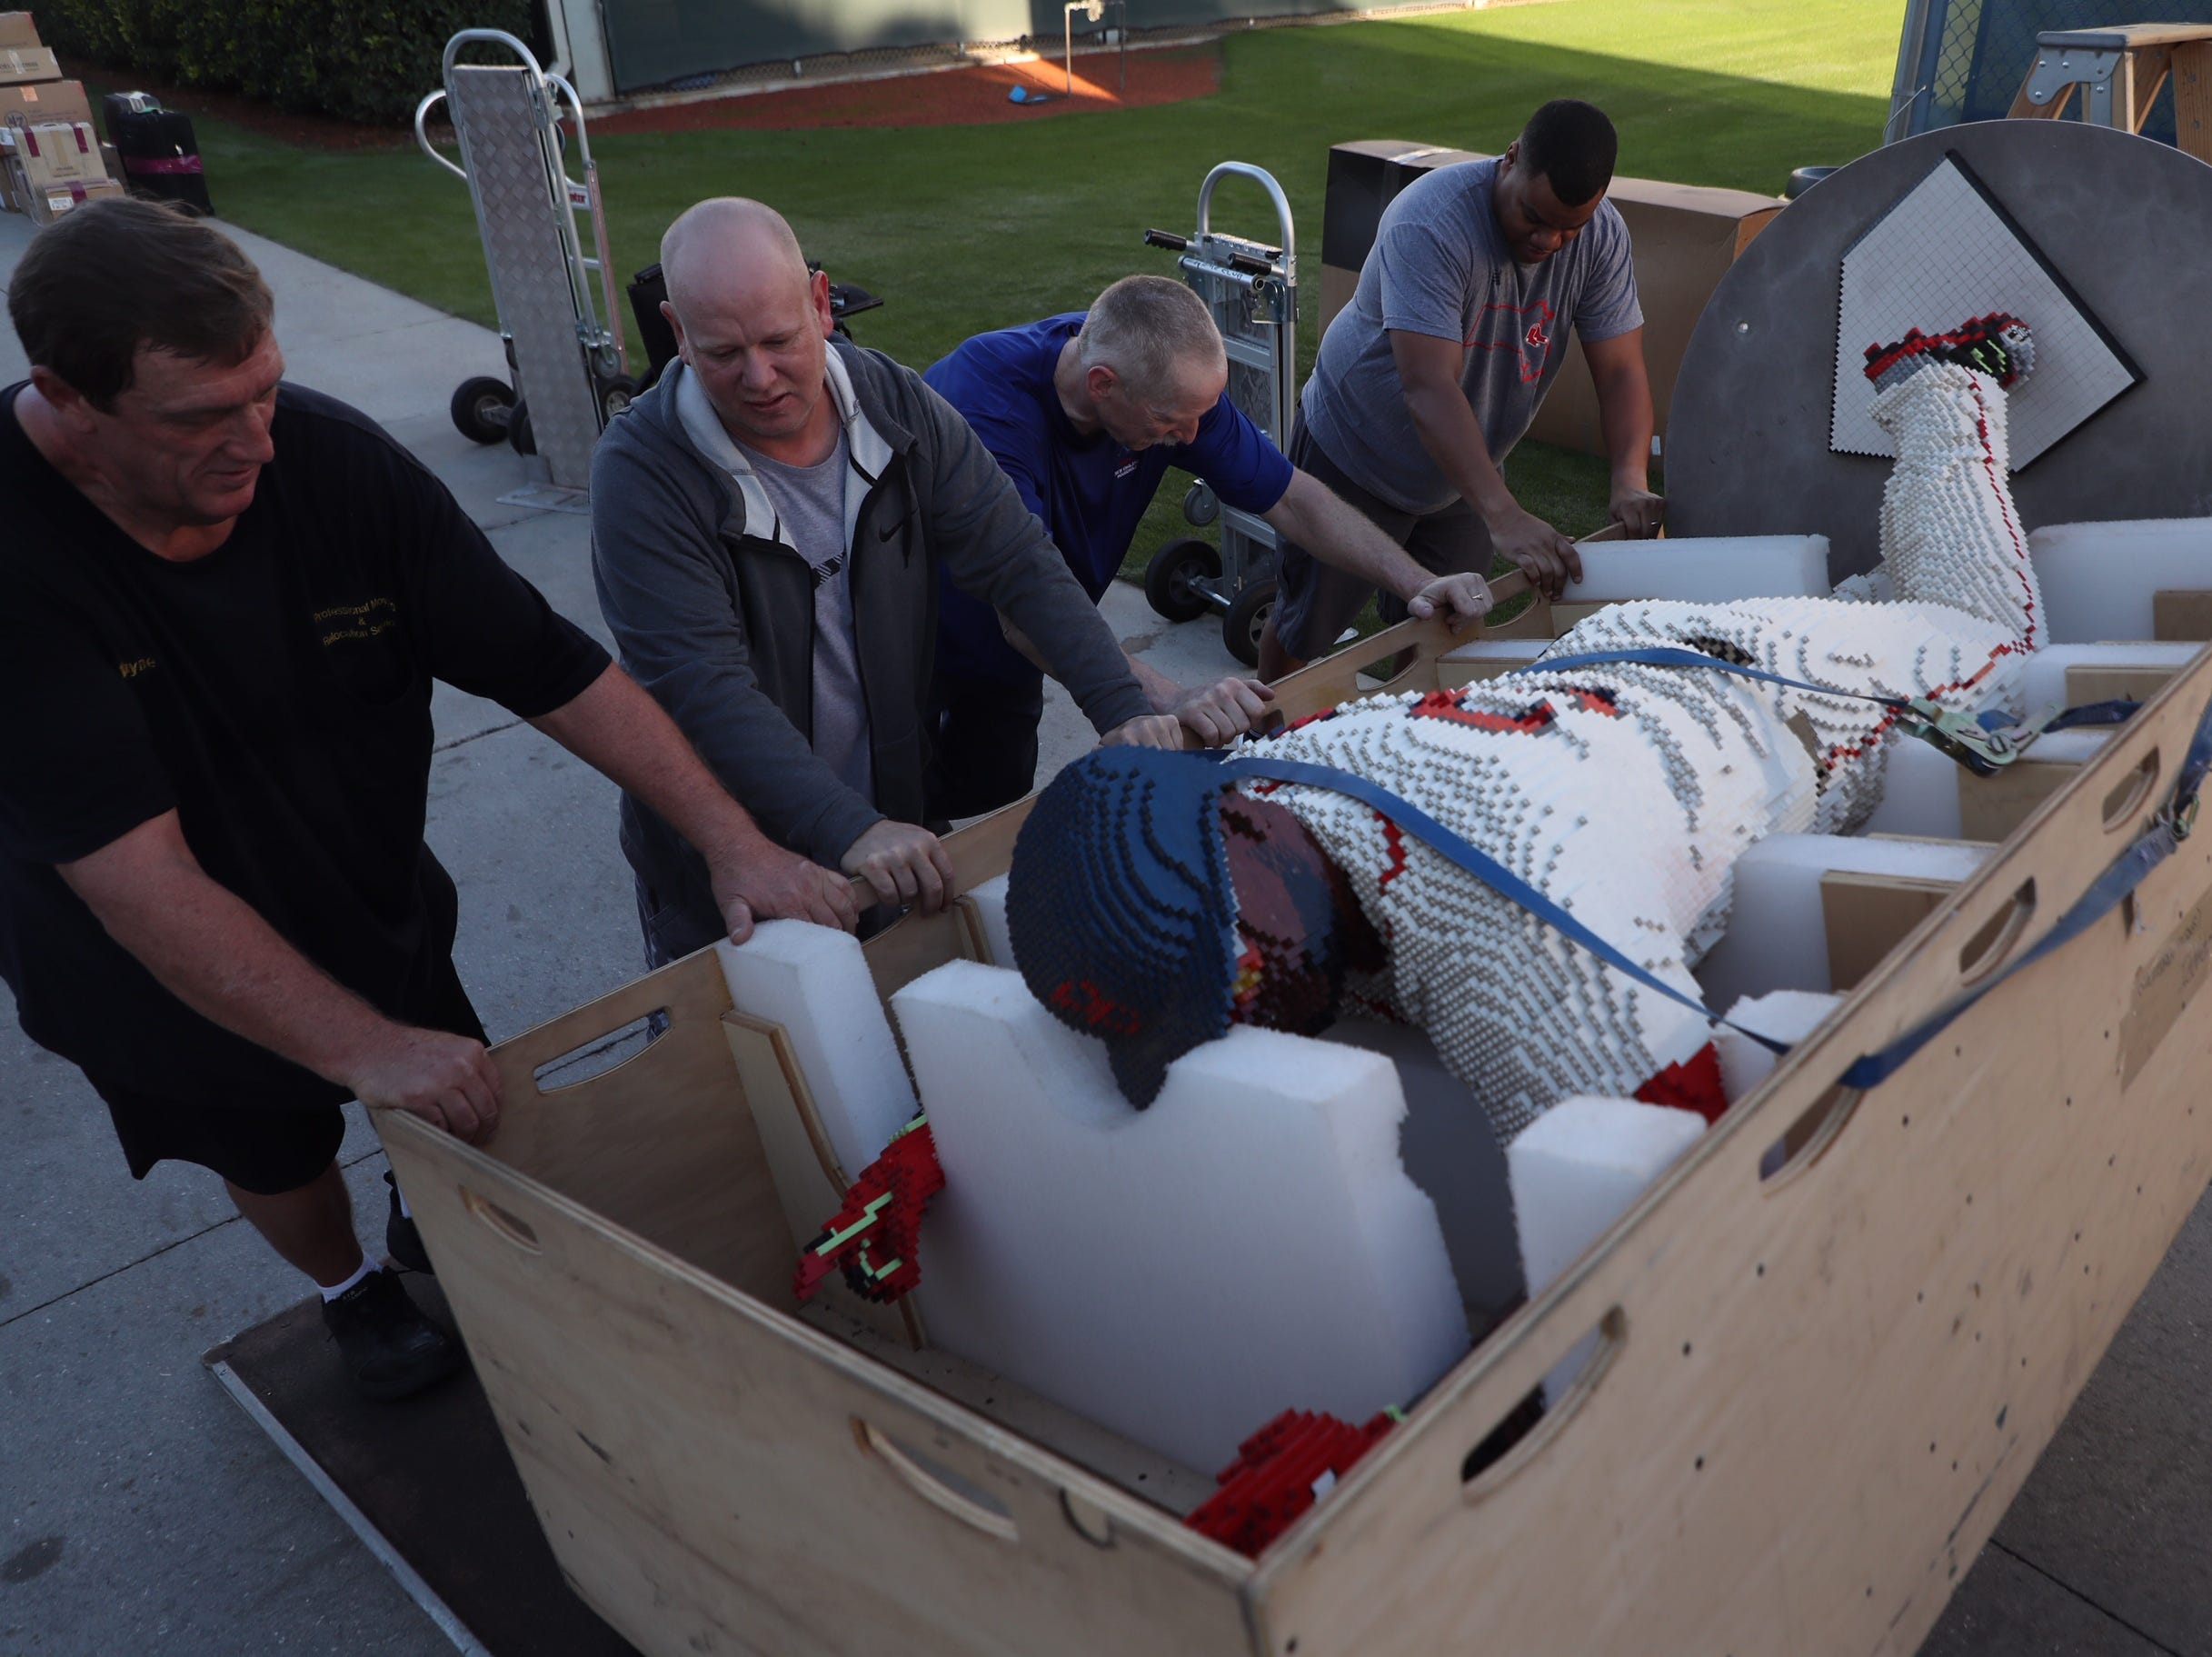 A LEGO sculpture of Red Sox legend David Ortiz is unloaded from the Red Sox equipment truck.